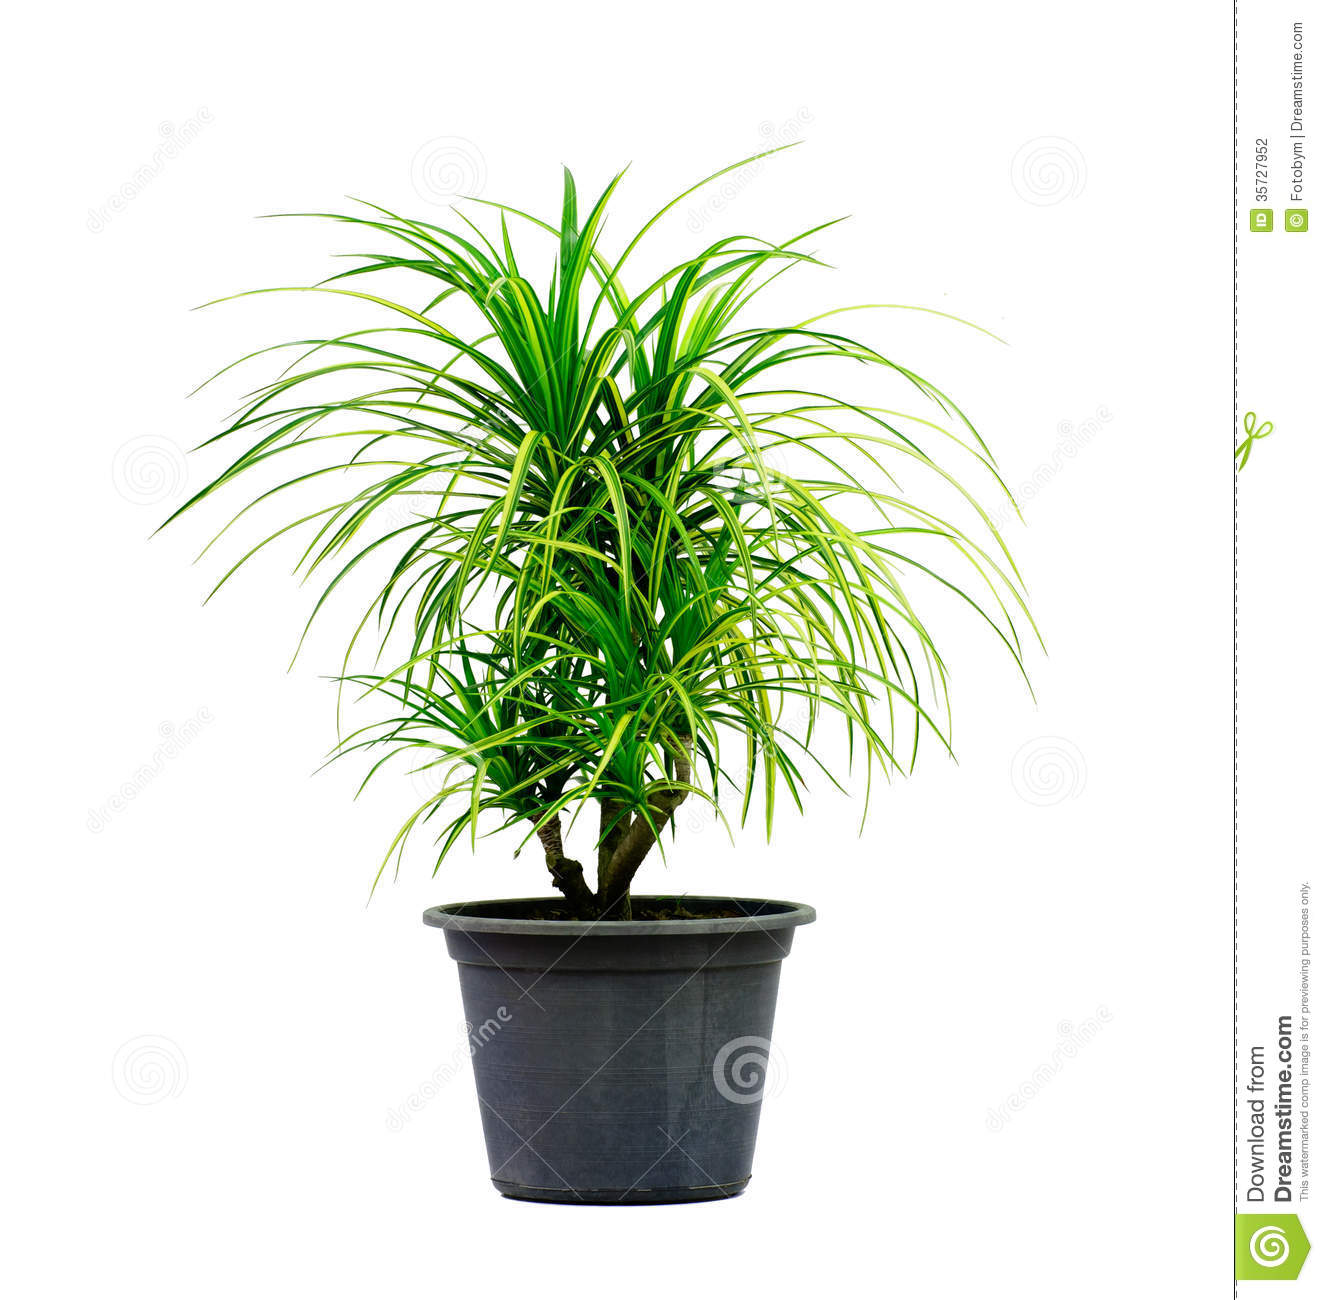 Green house plant isolated on white stock photo image 35727952 - White flowering house plants ...